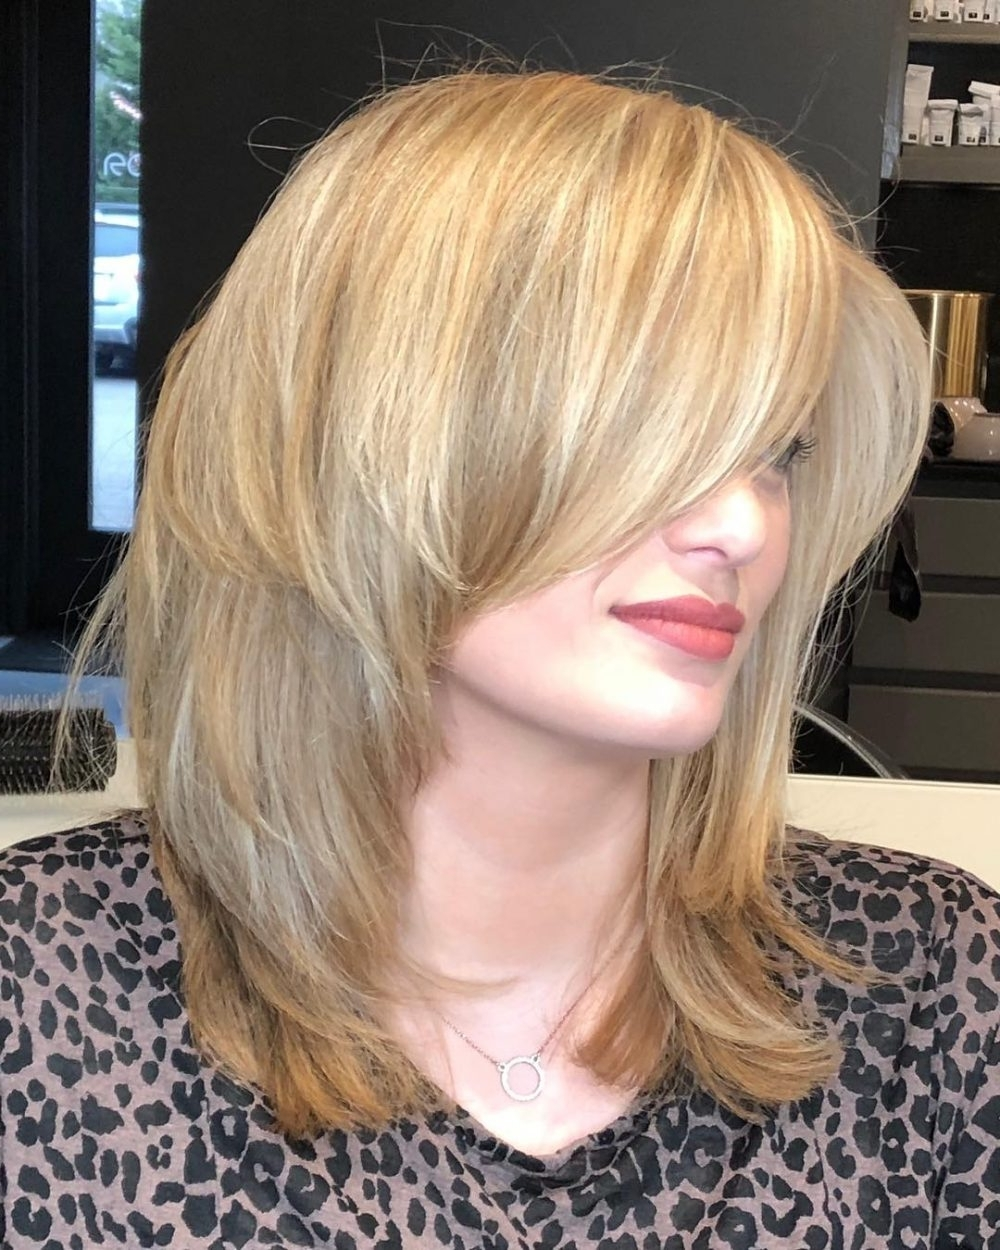 23 Perfect Medium Hairstyles For Square Faces In 2021 Medium Hairstyles For Square Faces